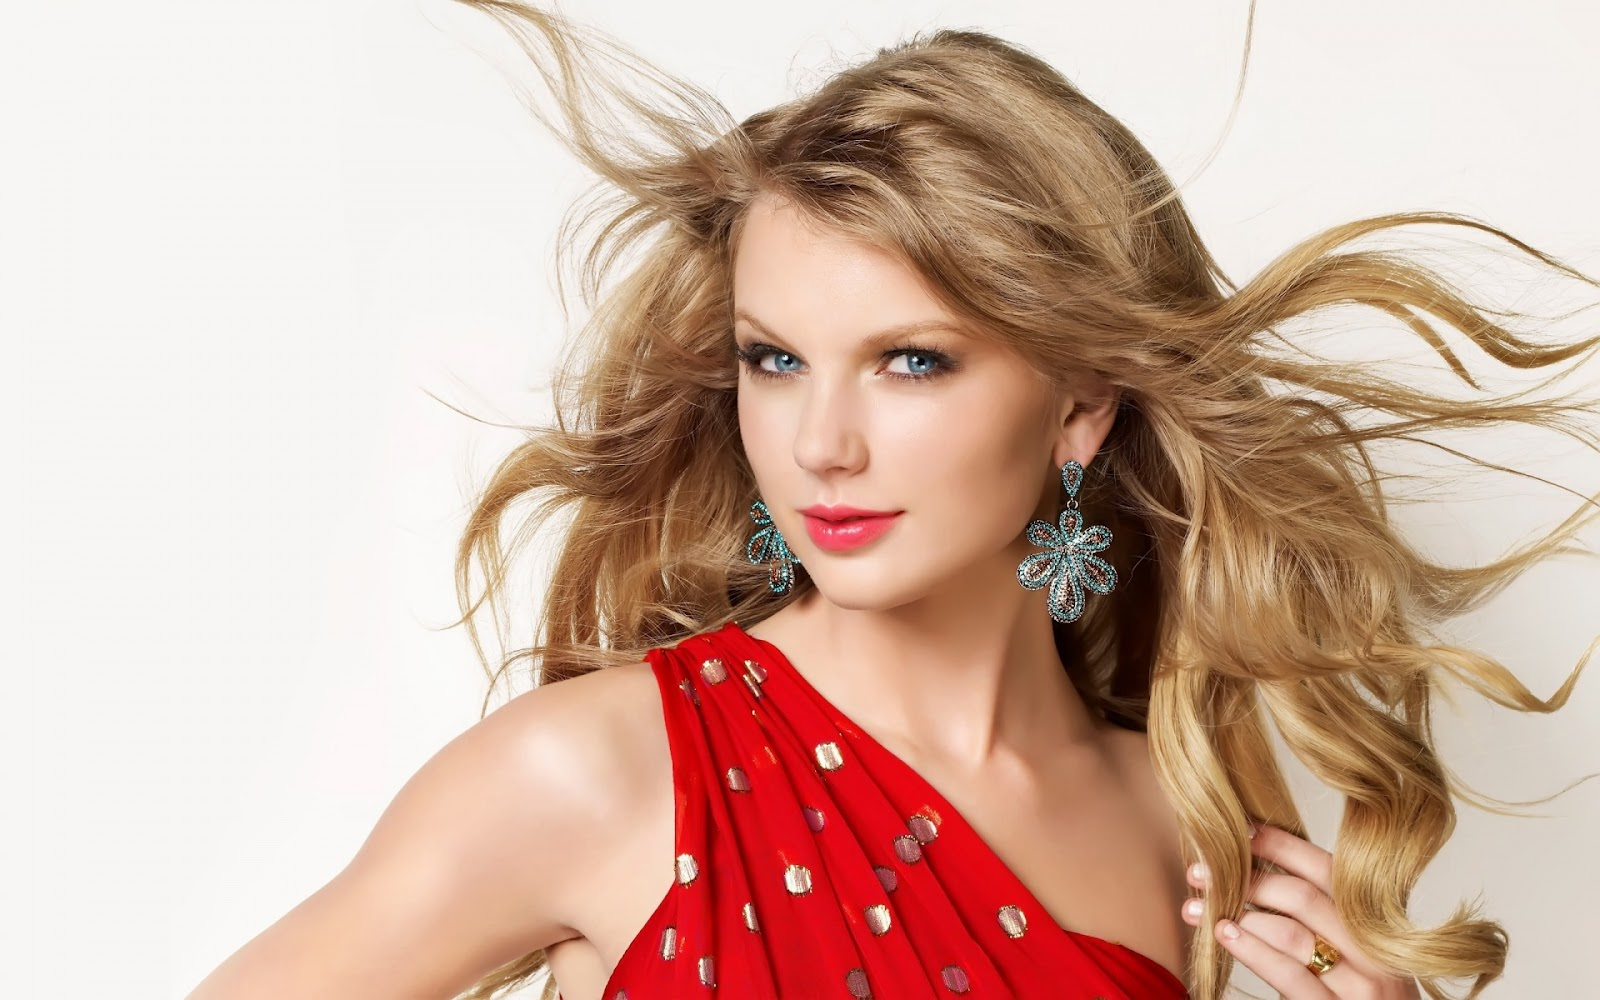 Taylor Swift Cool HD Wallpapers 2012 2013 HOT CELEBRITY Emma Stone 1600x1000